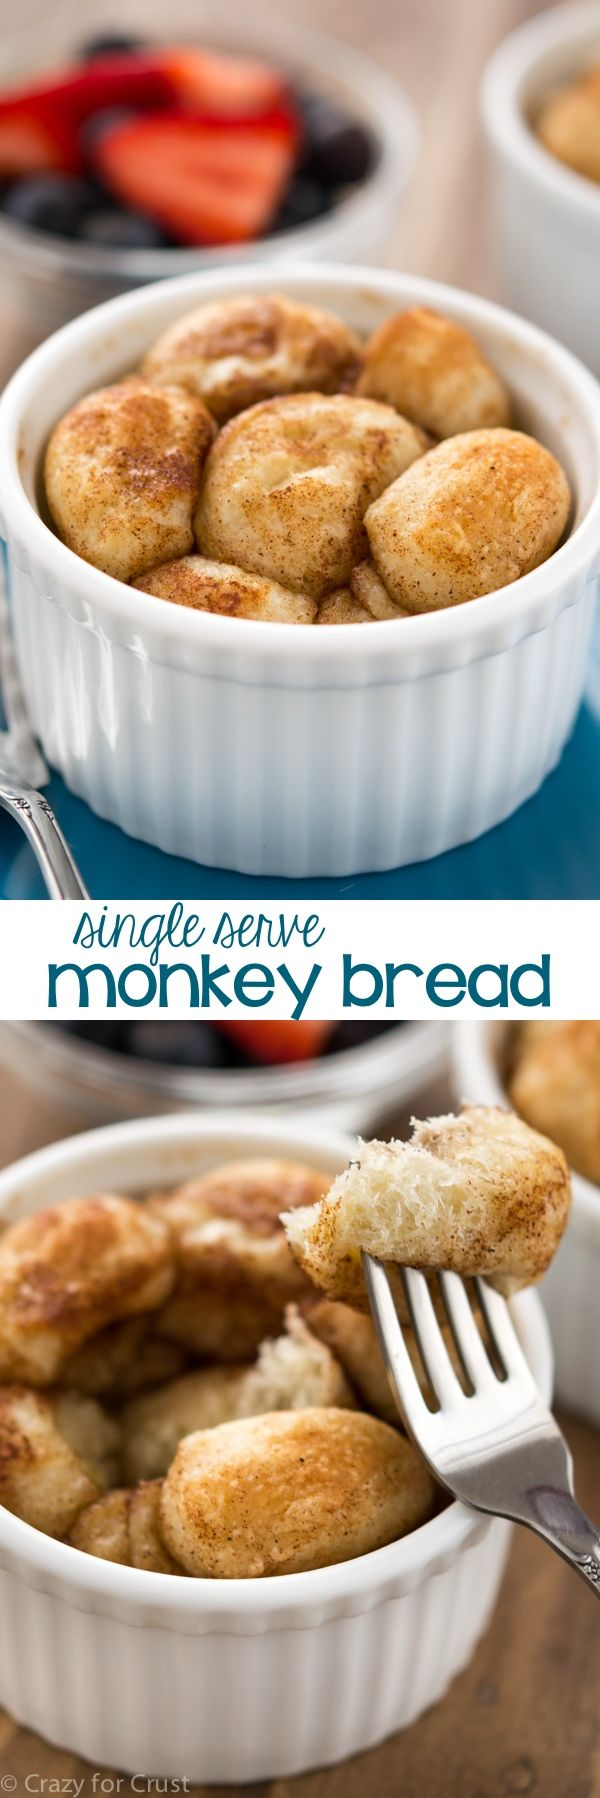 Single Serve Monkey Bread                                                                                                                                                                                 More